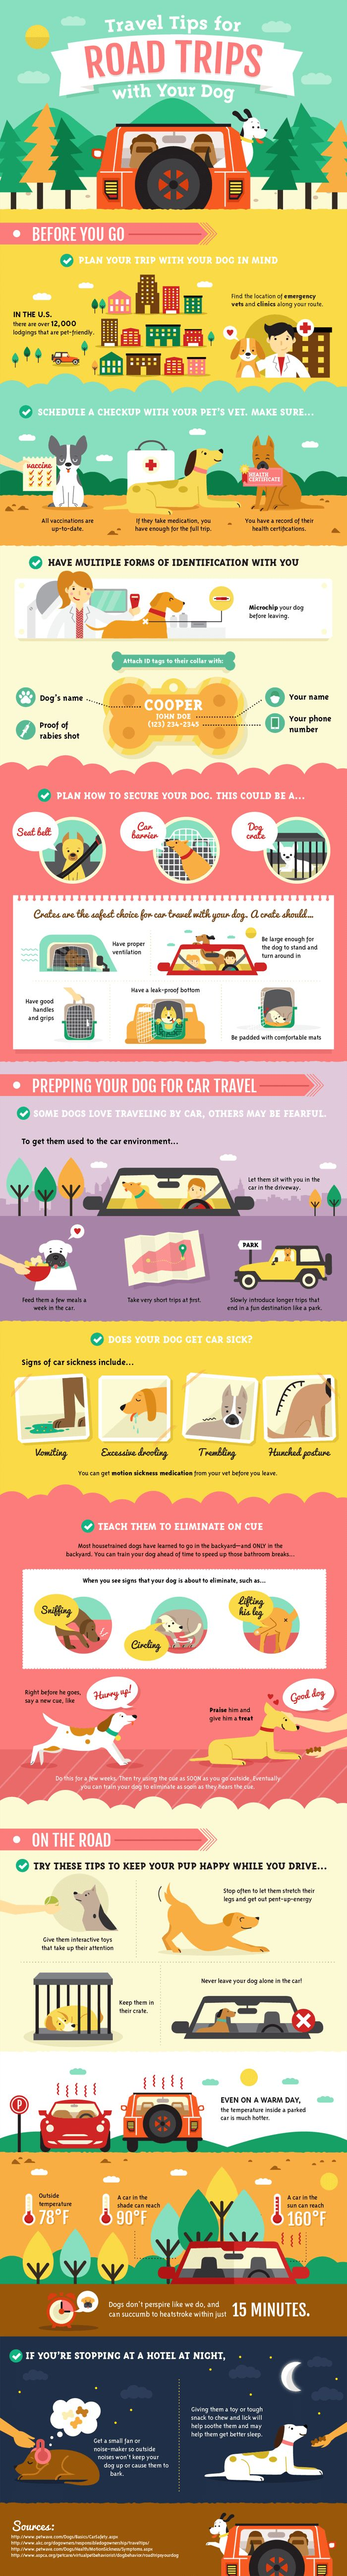 Going on a road trip with your dog? Find out what you should pack and other great traveling tips to keep your furry friend safe!